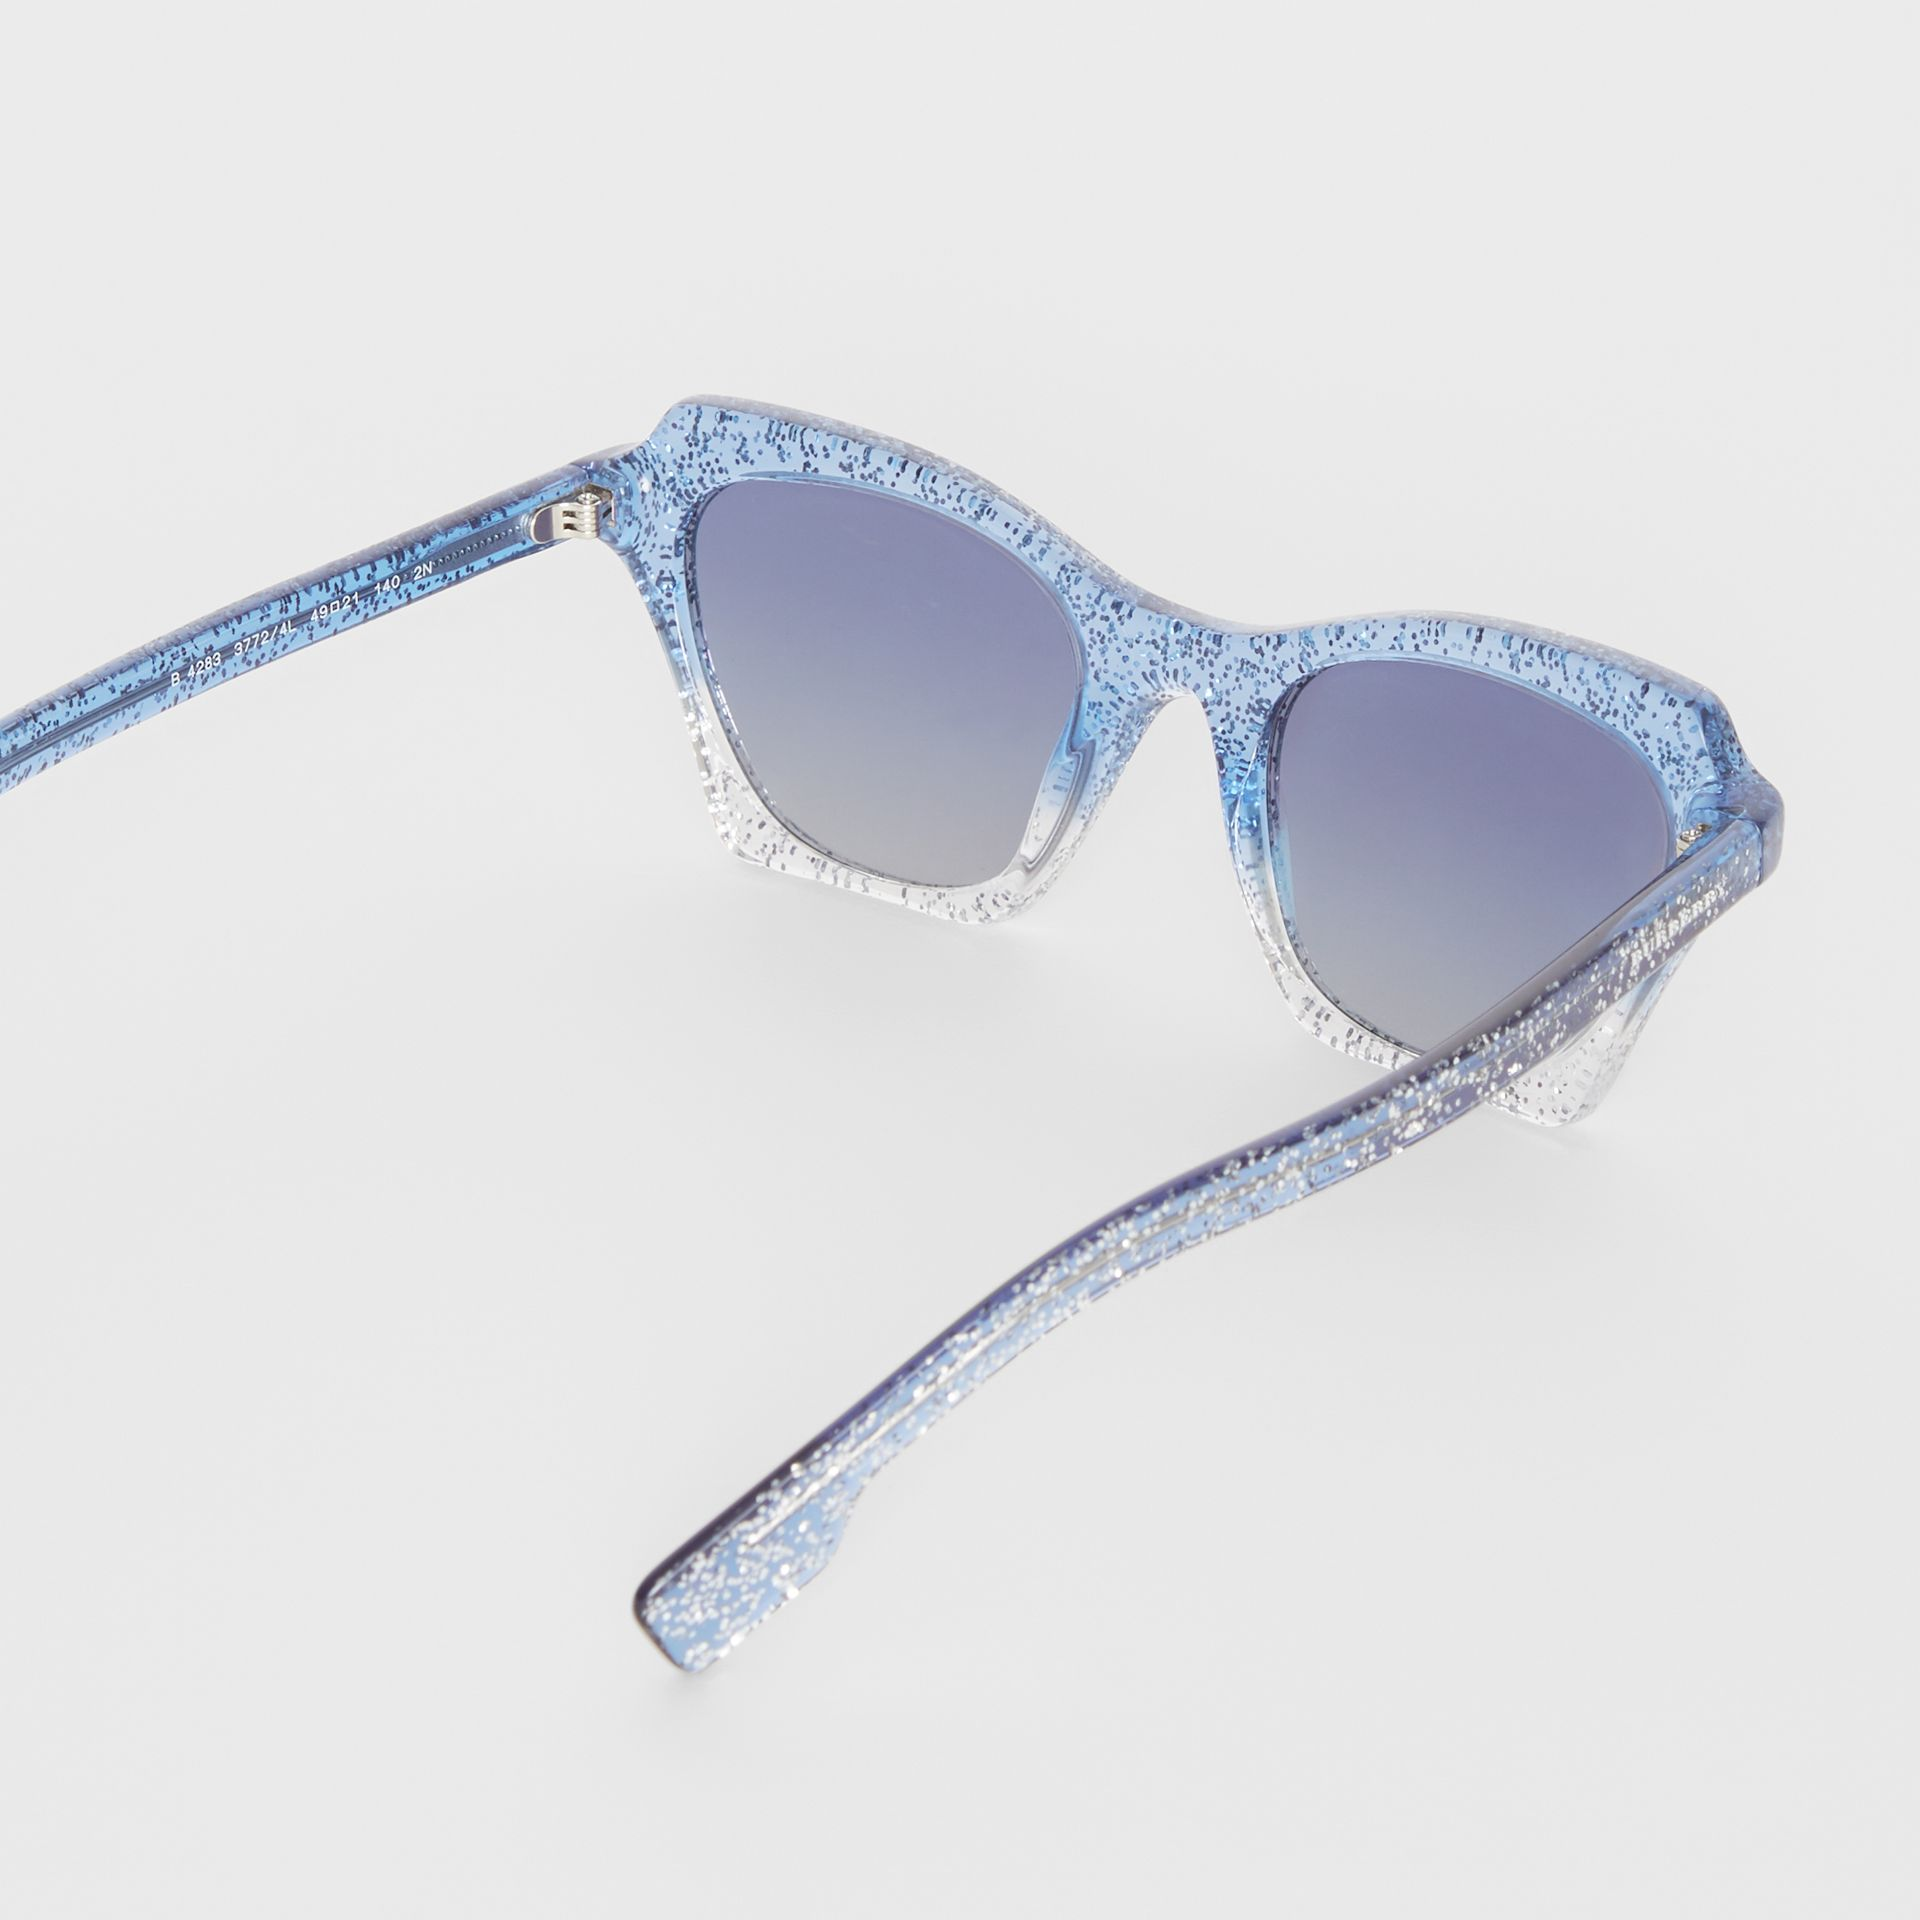 Butterfly Frame Sunglasses in Blue - Women | Burberry United Kingdom - gallery image 4